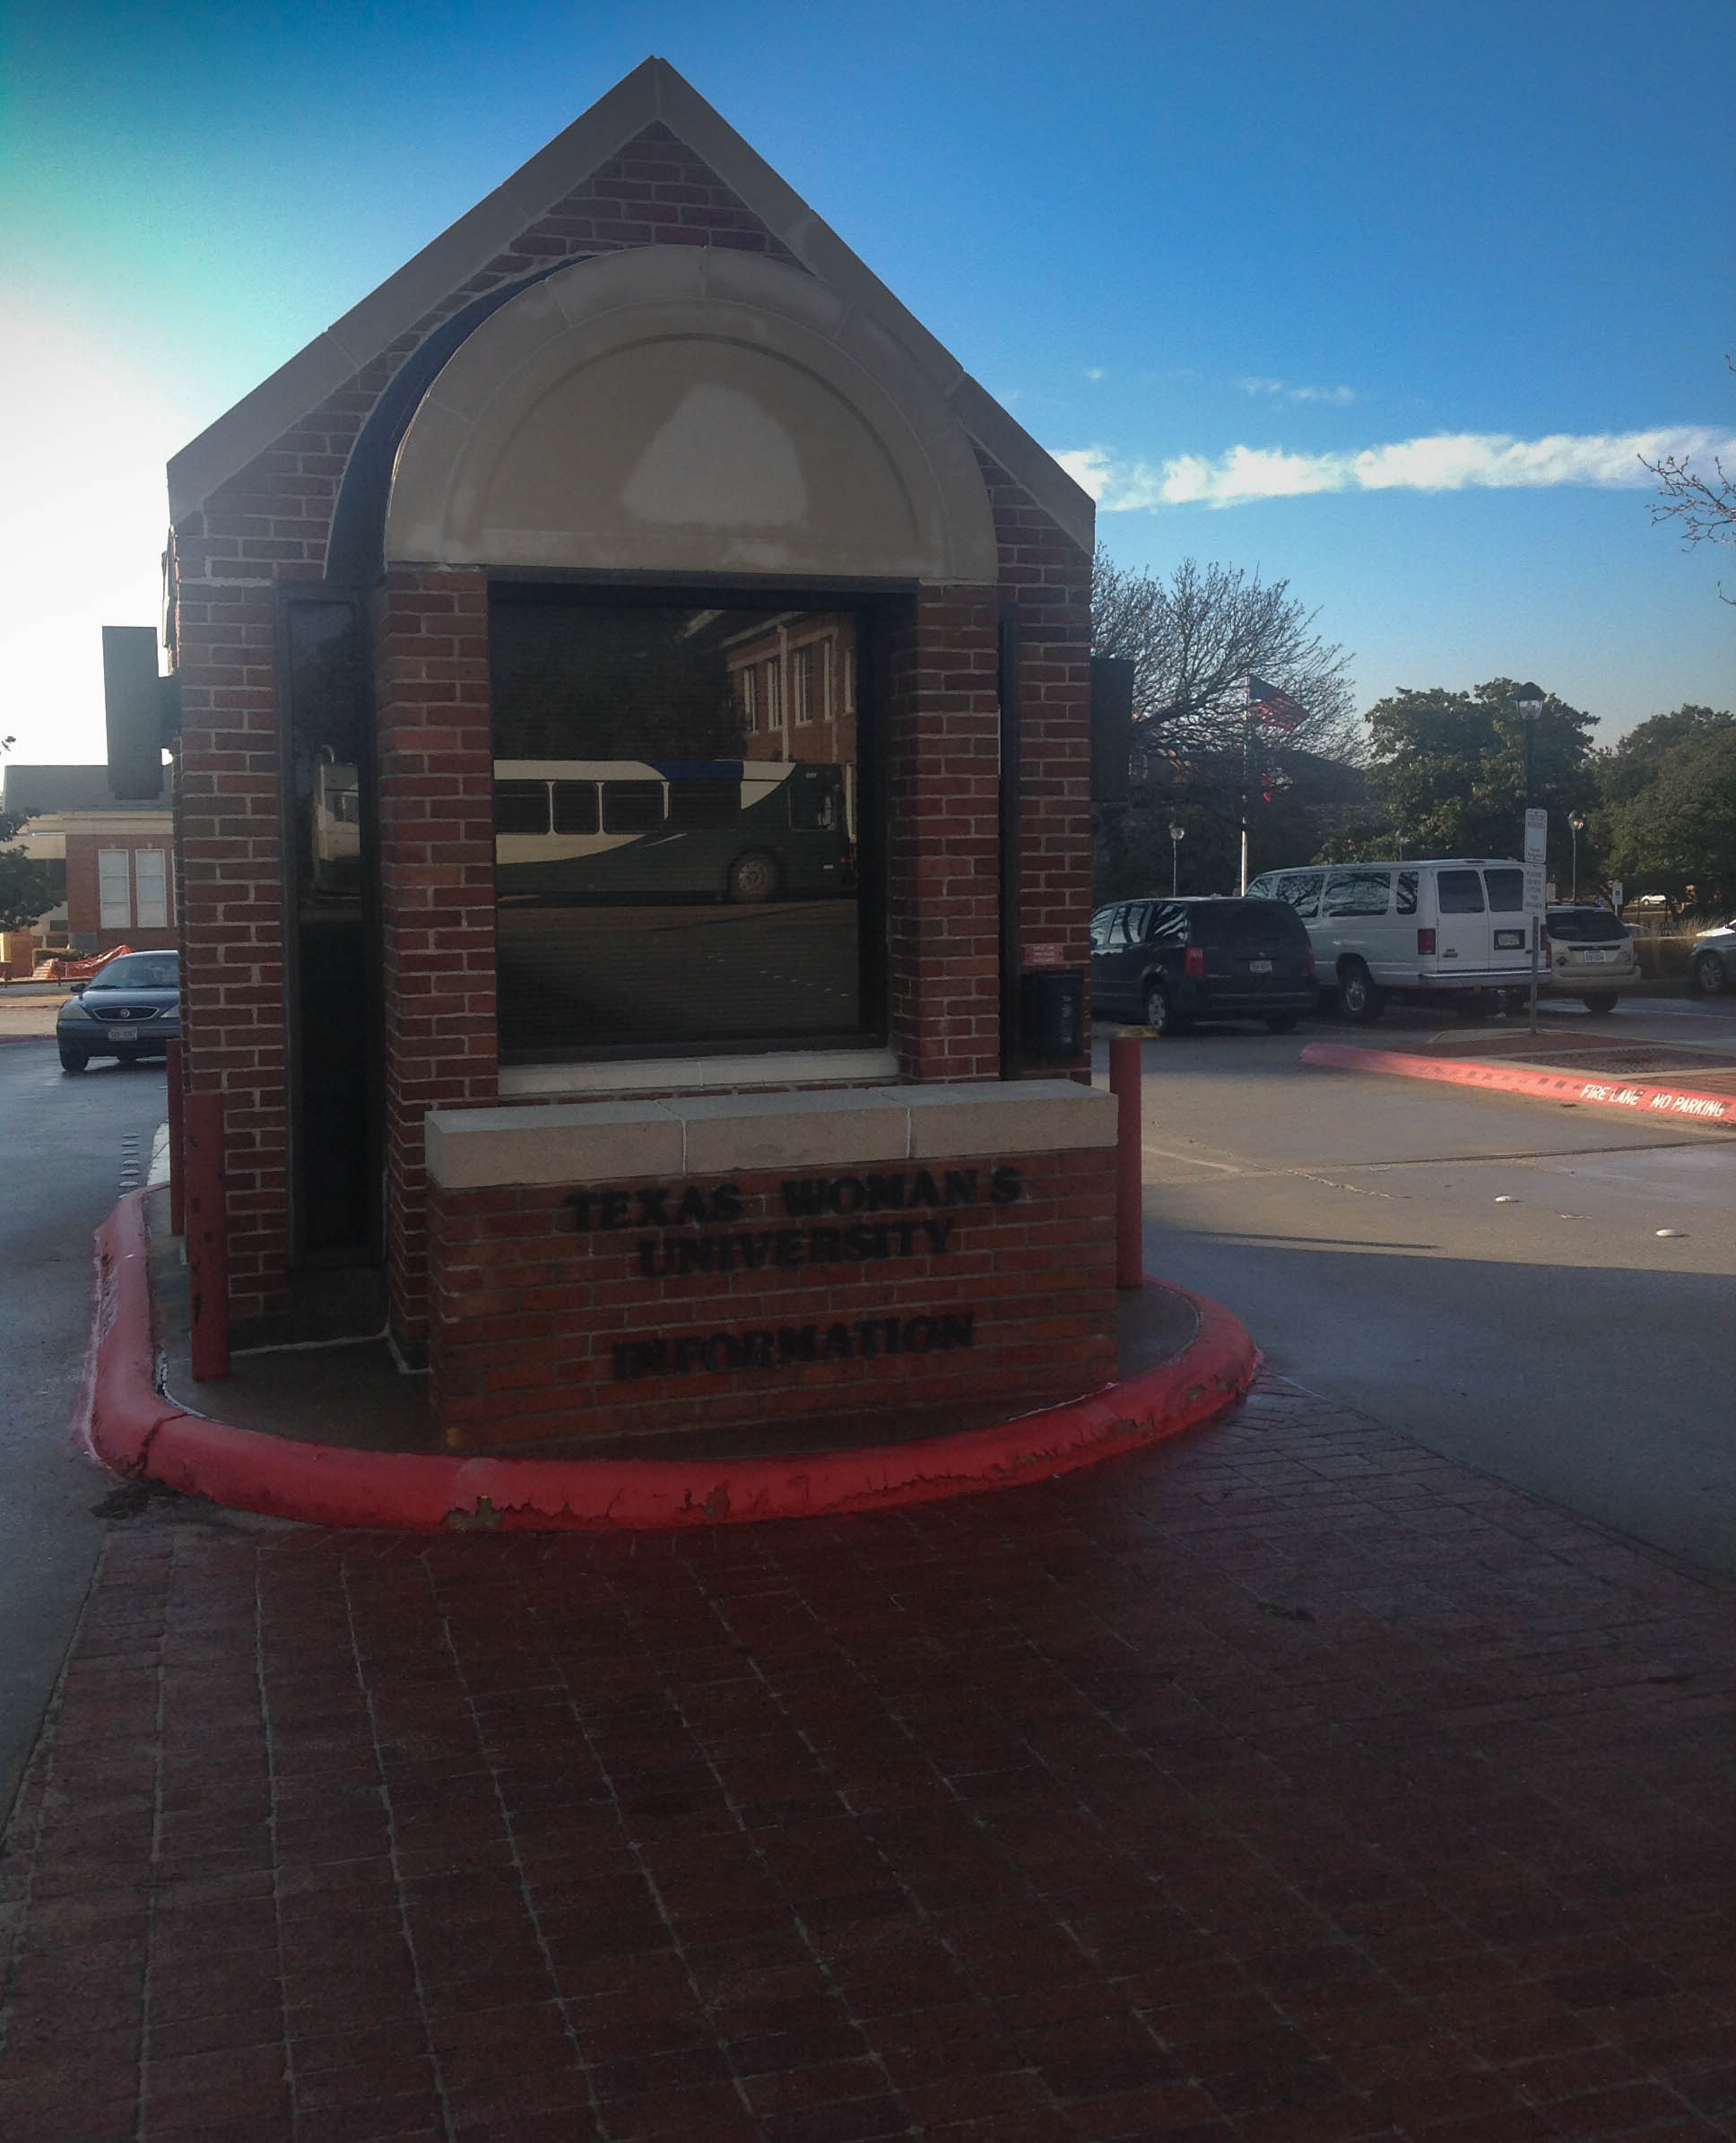 Information booth at TWU Denton campus